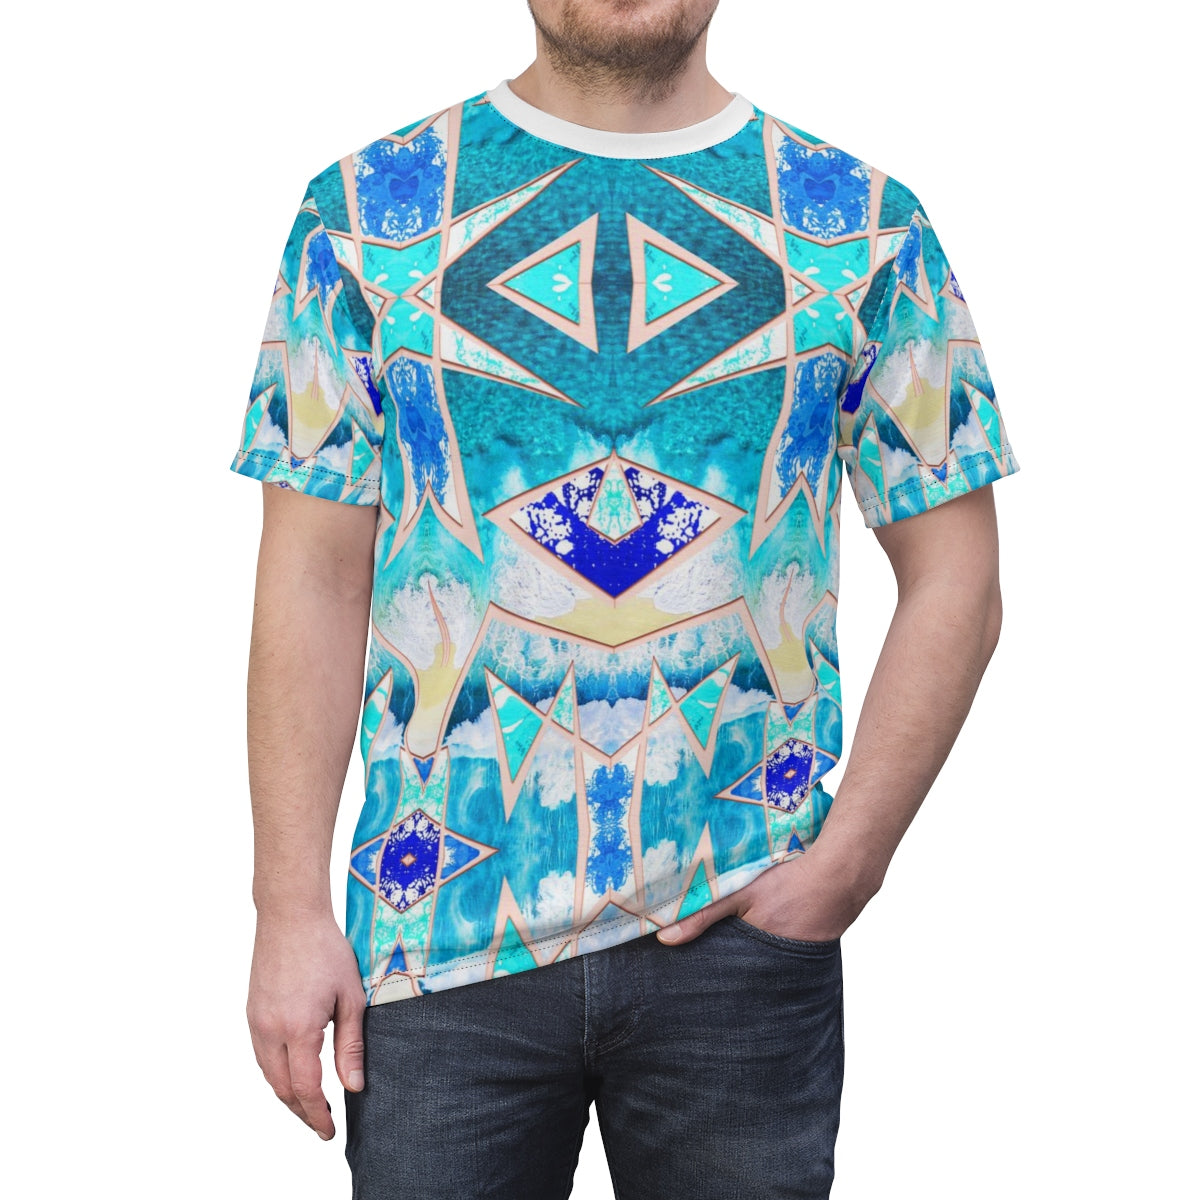 Fiji Islands #0021 (T-shirt)